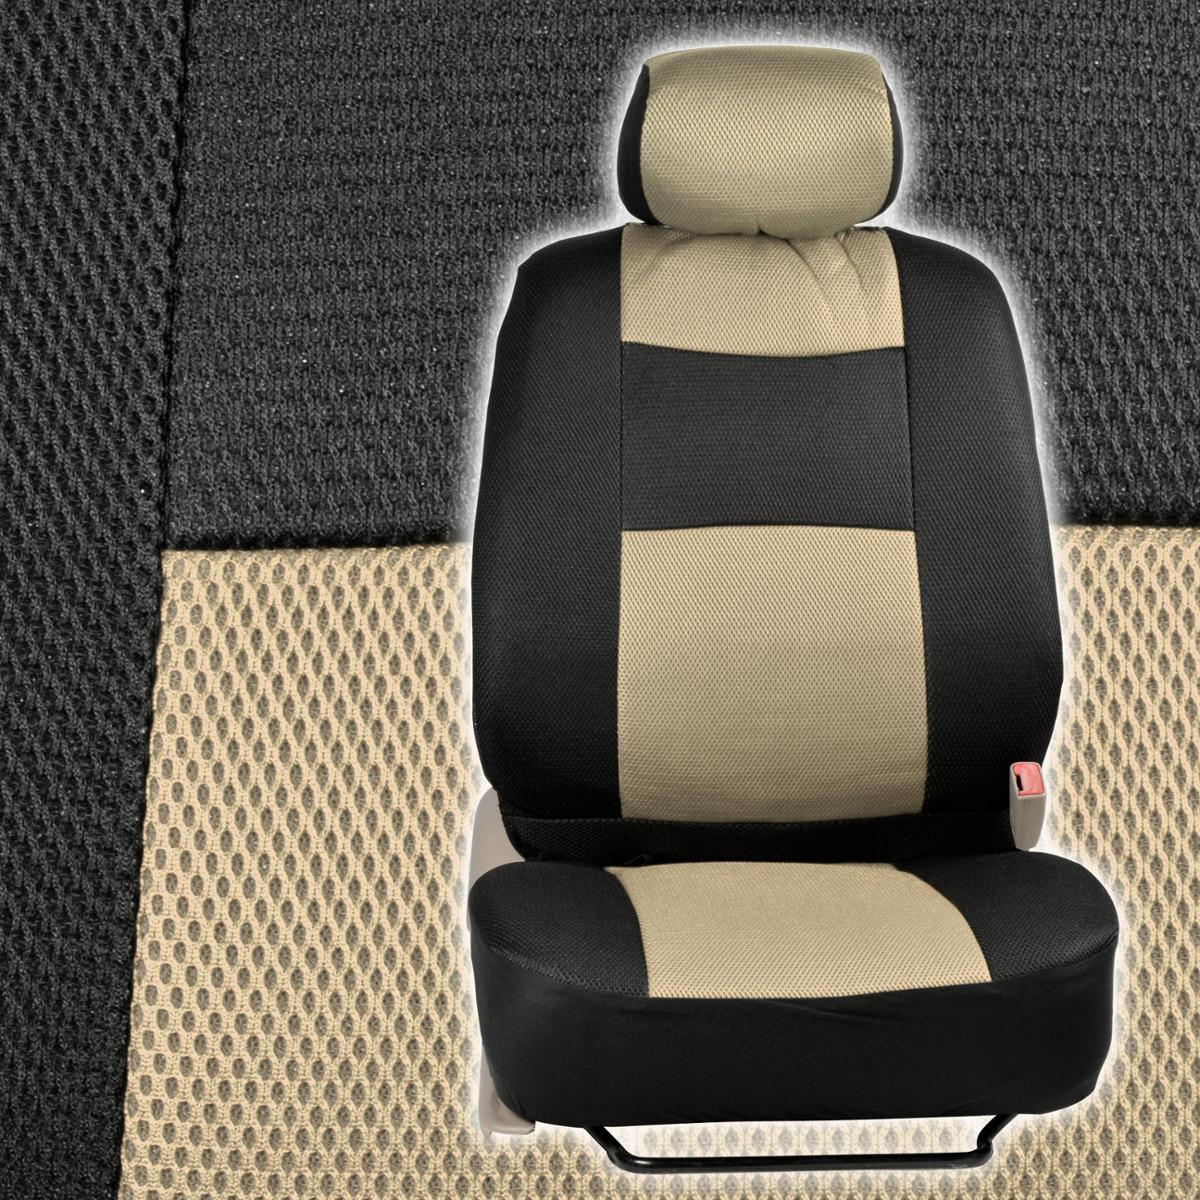 full interior car seat covers black beige supreme padding mesh netting comfort ebay. Black Bedroom Furniture Sets. Home Design Ideas